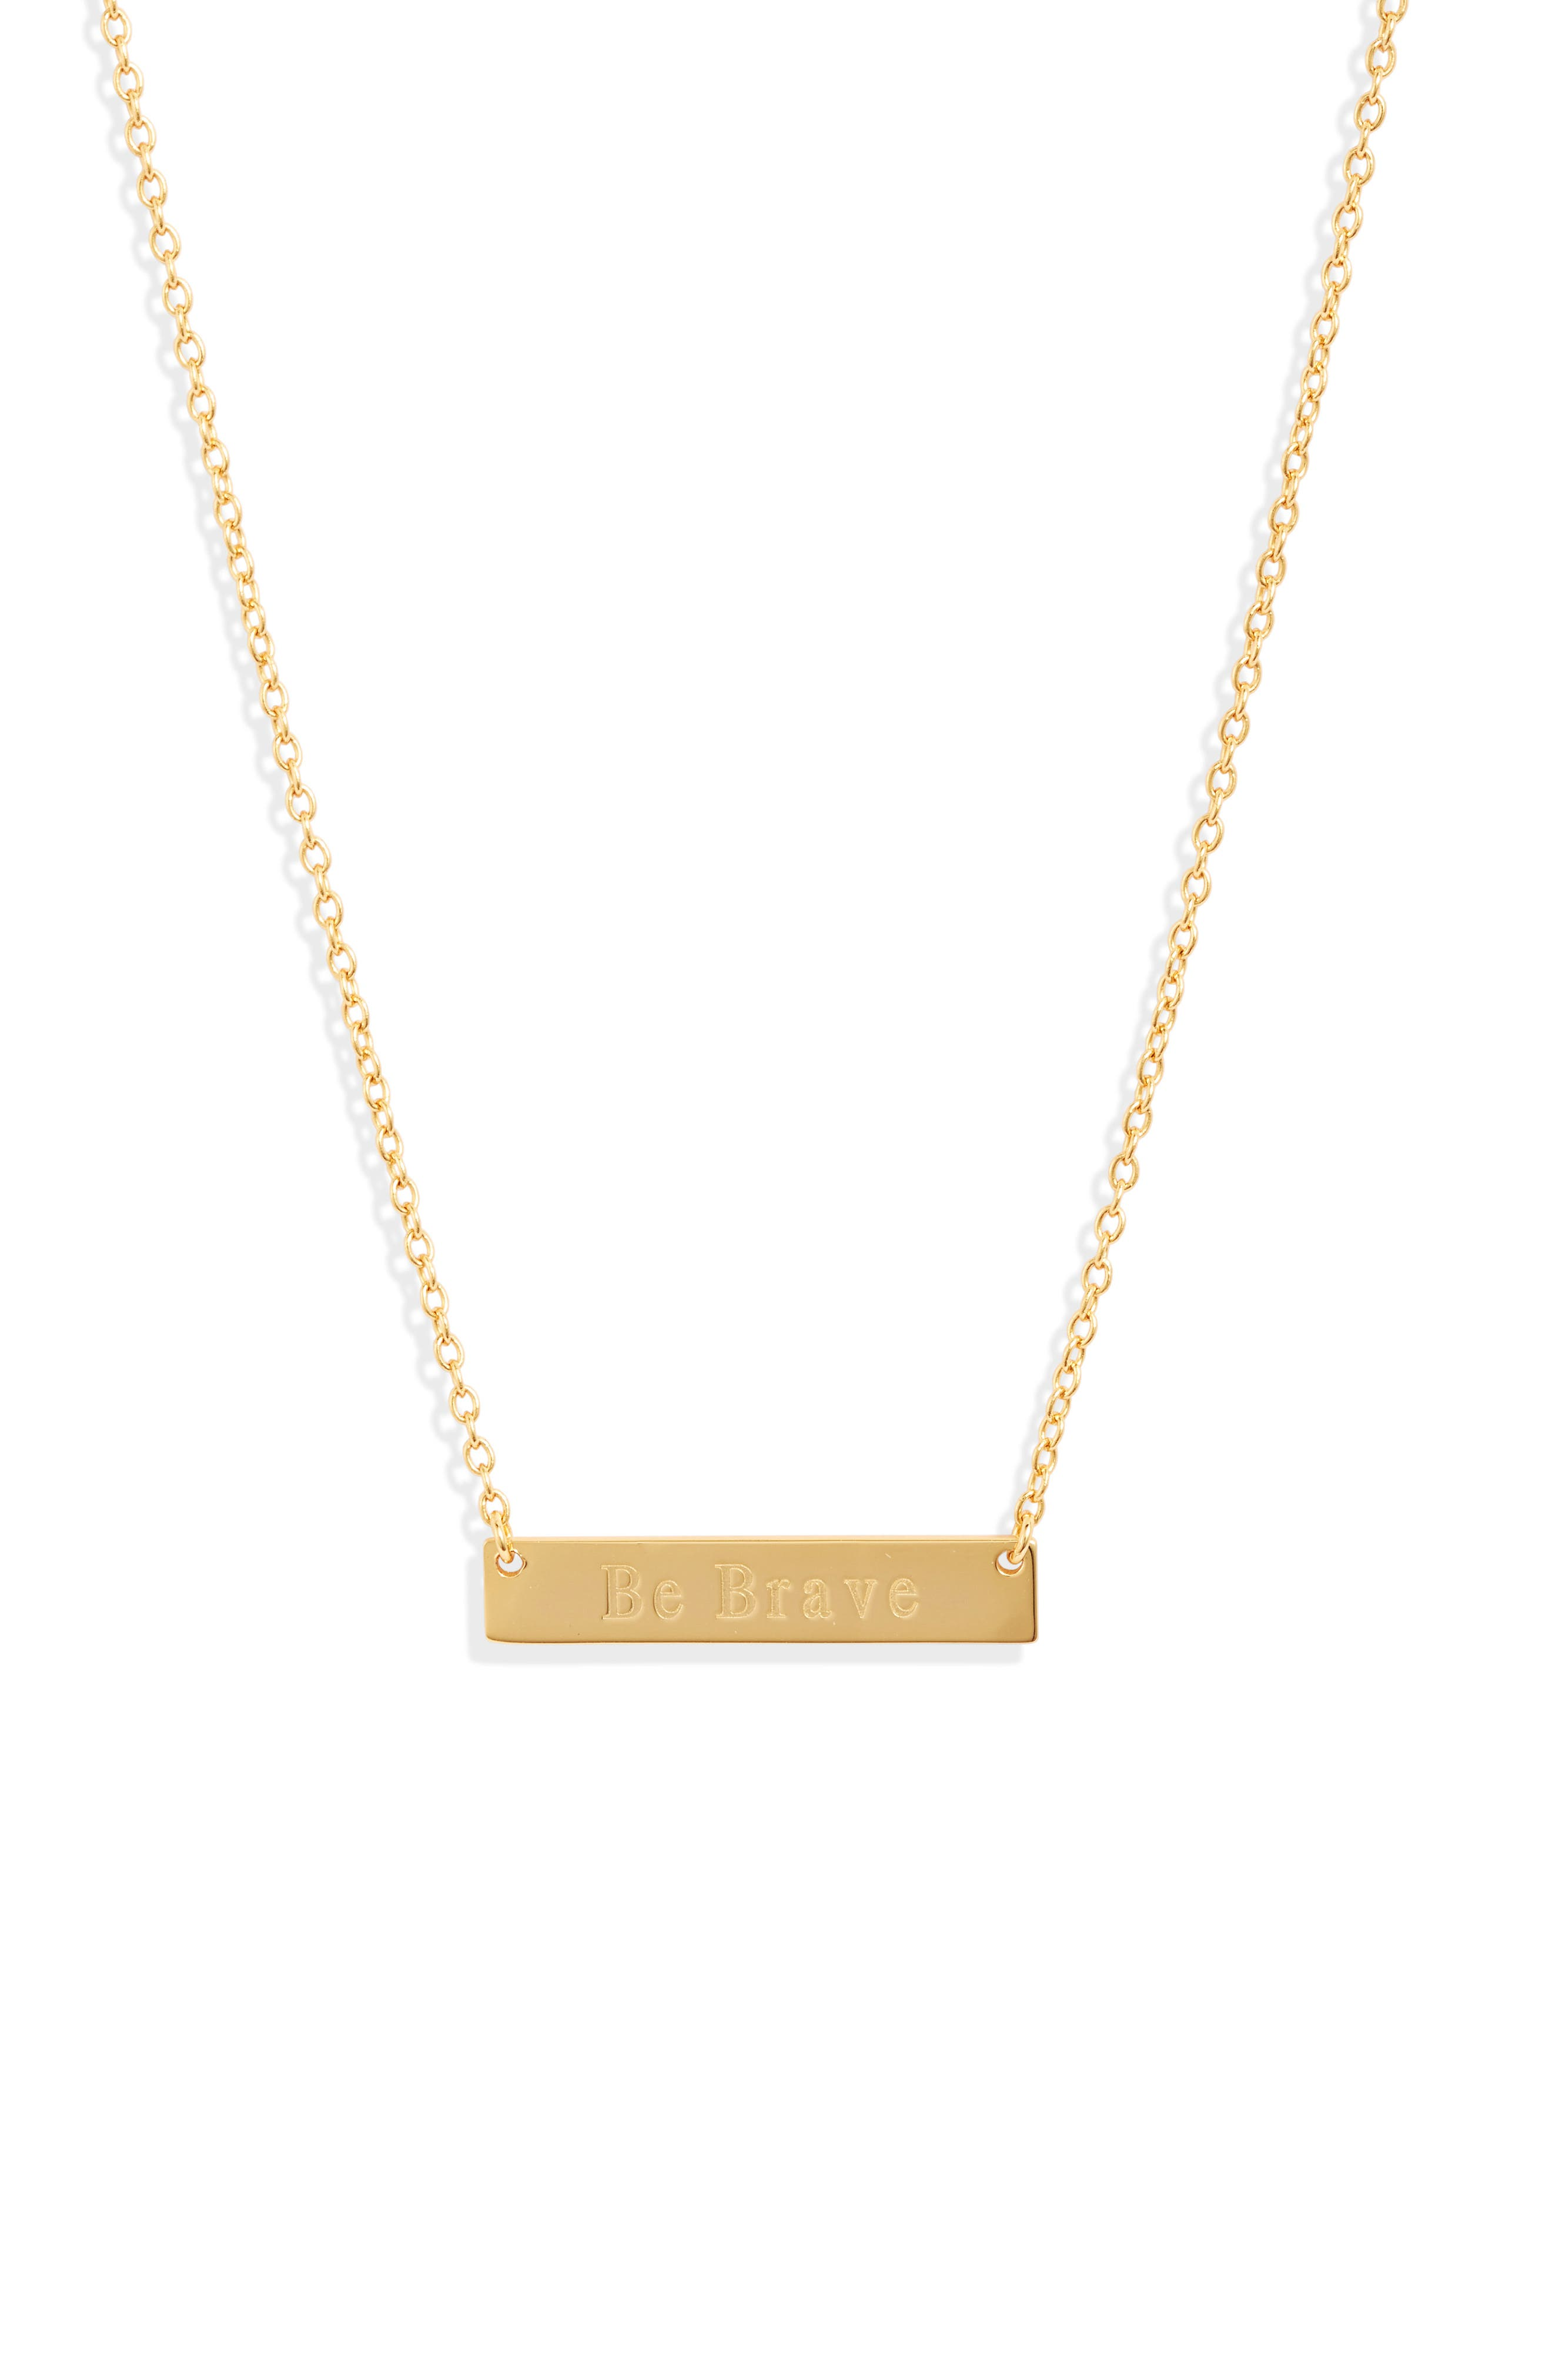 A simple design featuring a gleaming bar pendant embossed with an inspiring message defines this understated necklace. Style Name: Sterling Forever Be Brave Bar Pendant Necklace. Style Number: 5904770. Available in stores.